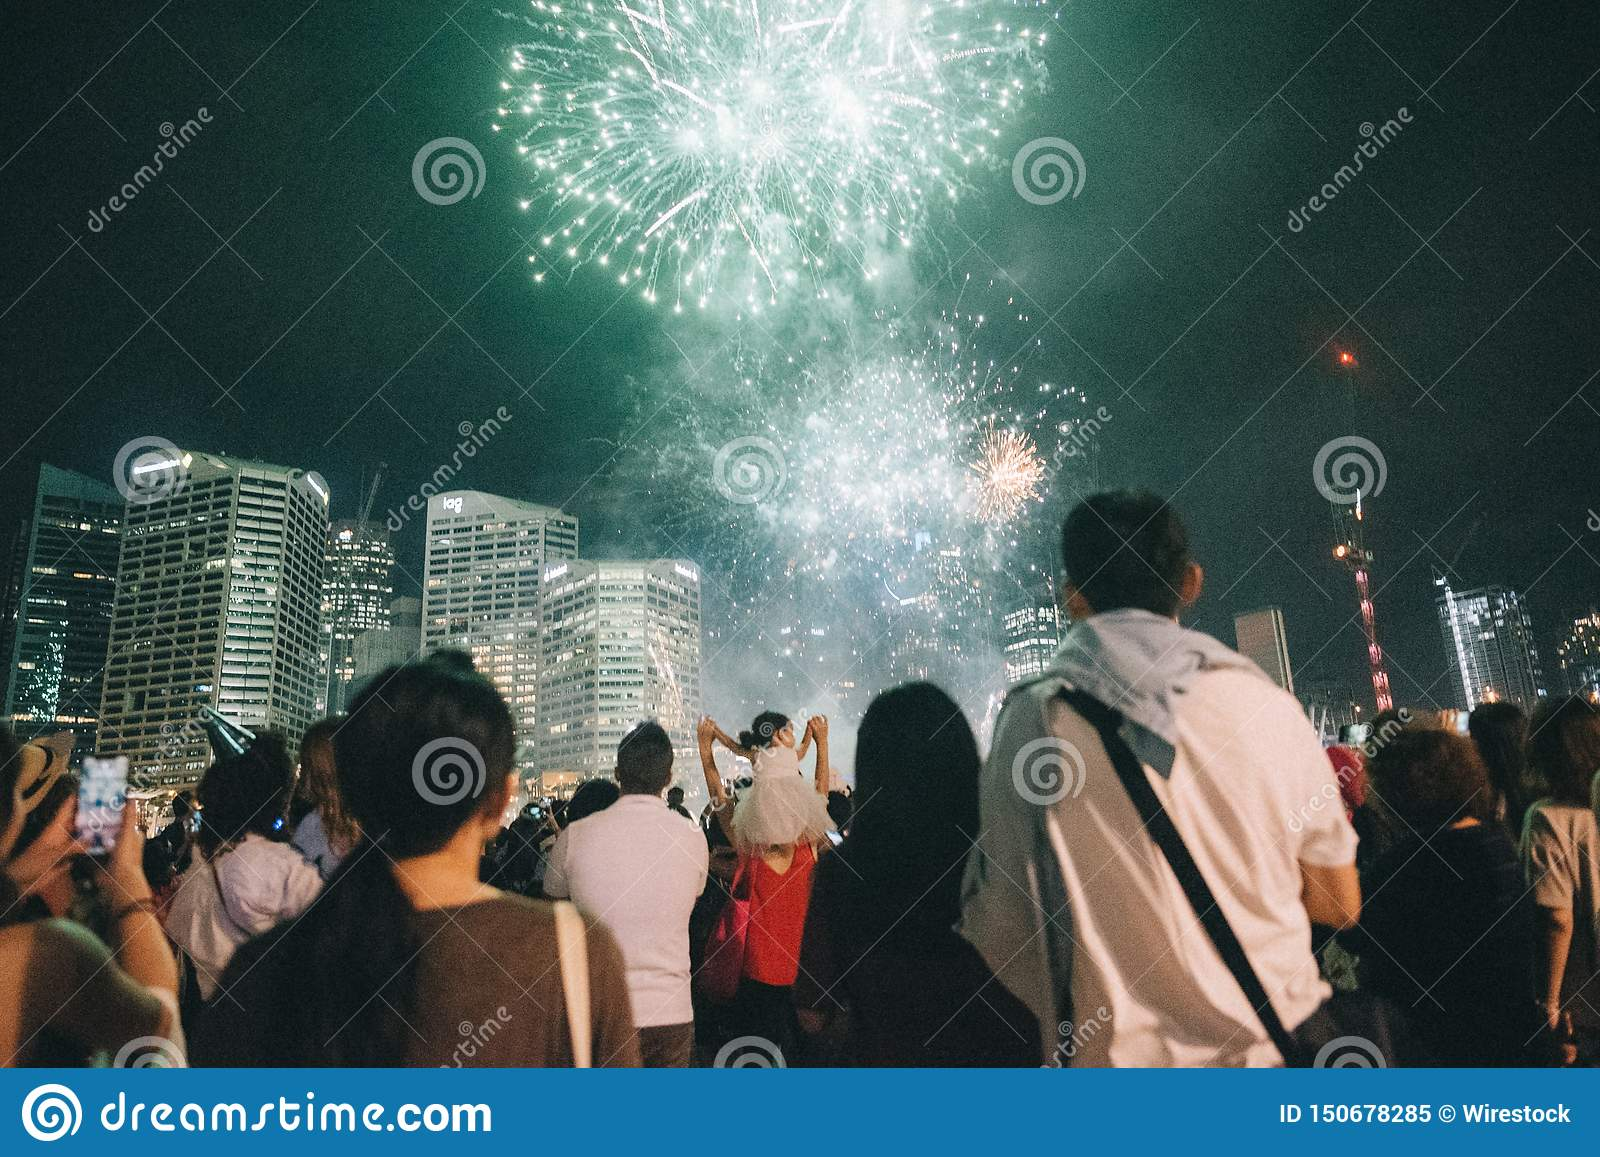 Group of people enjoying beautiful green fireworks at a festival in a park